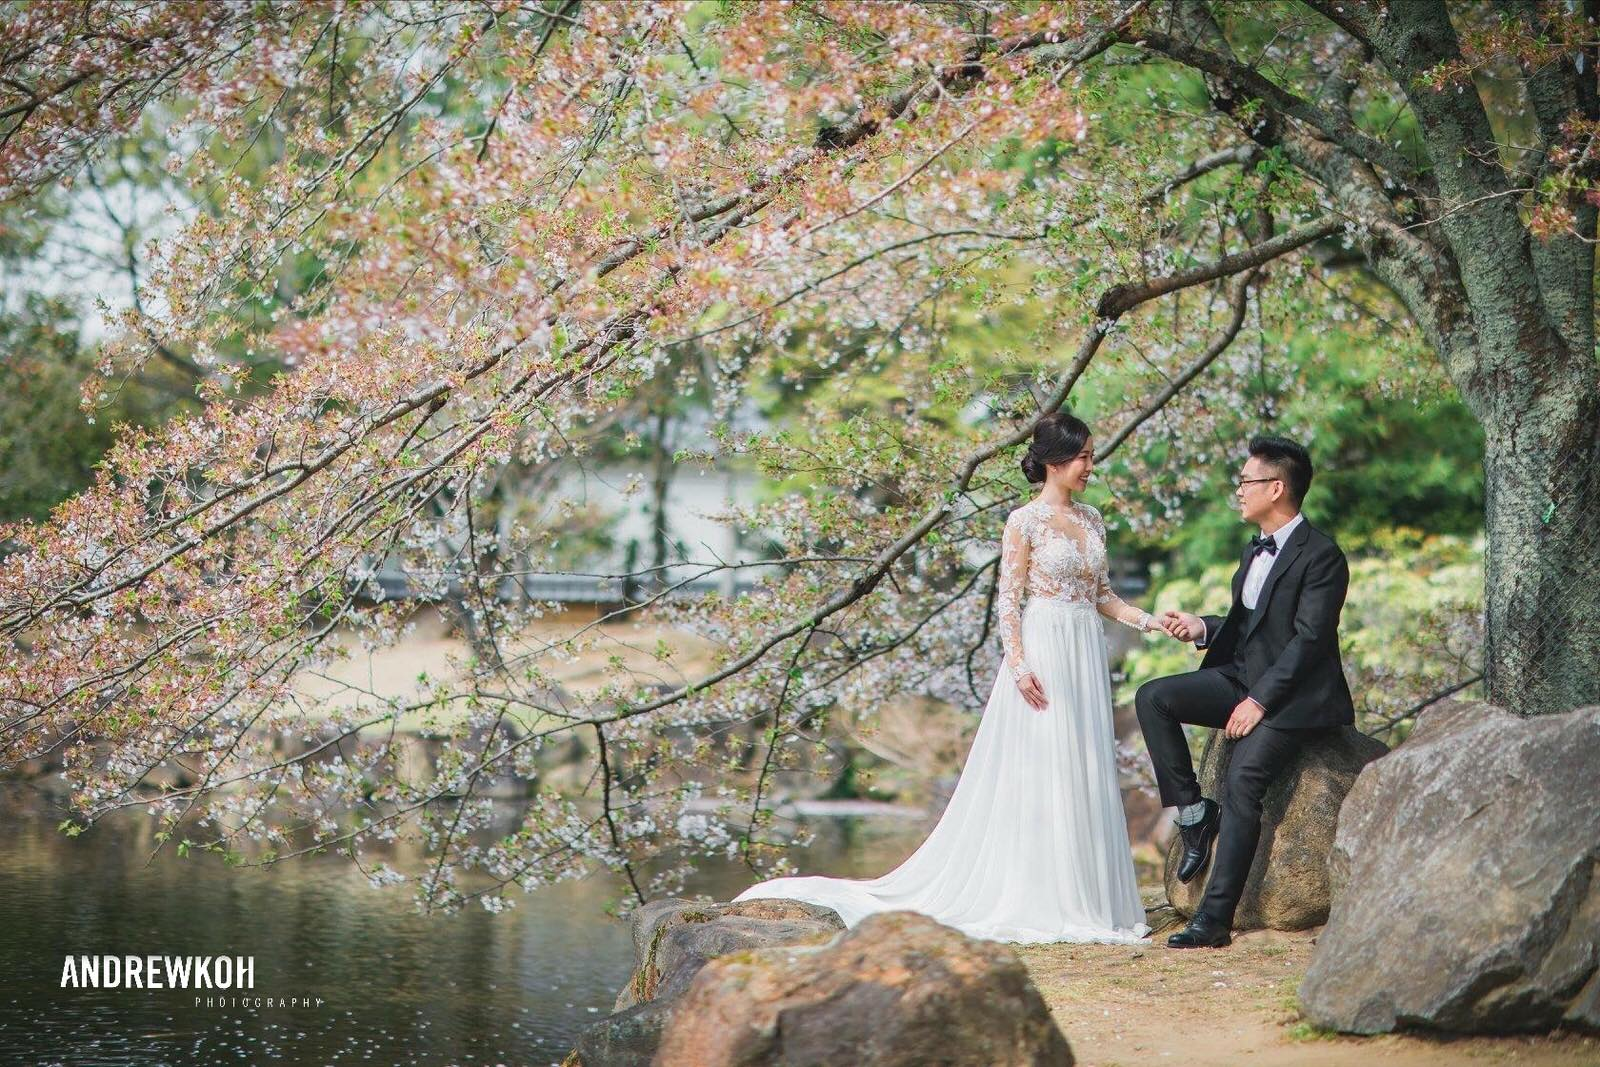 exquisite wedding photography package